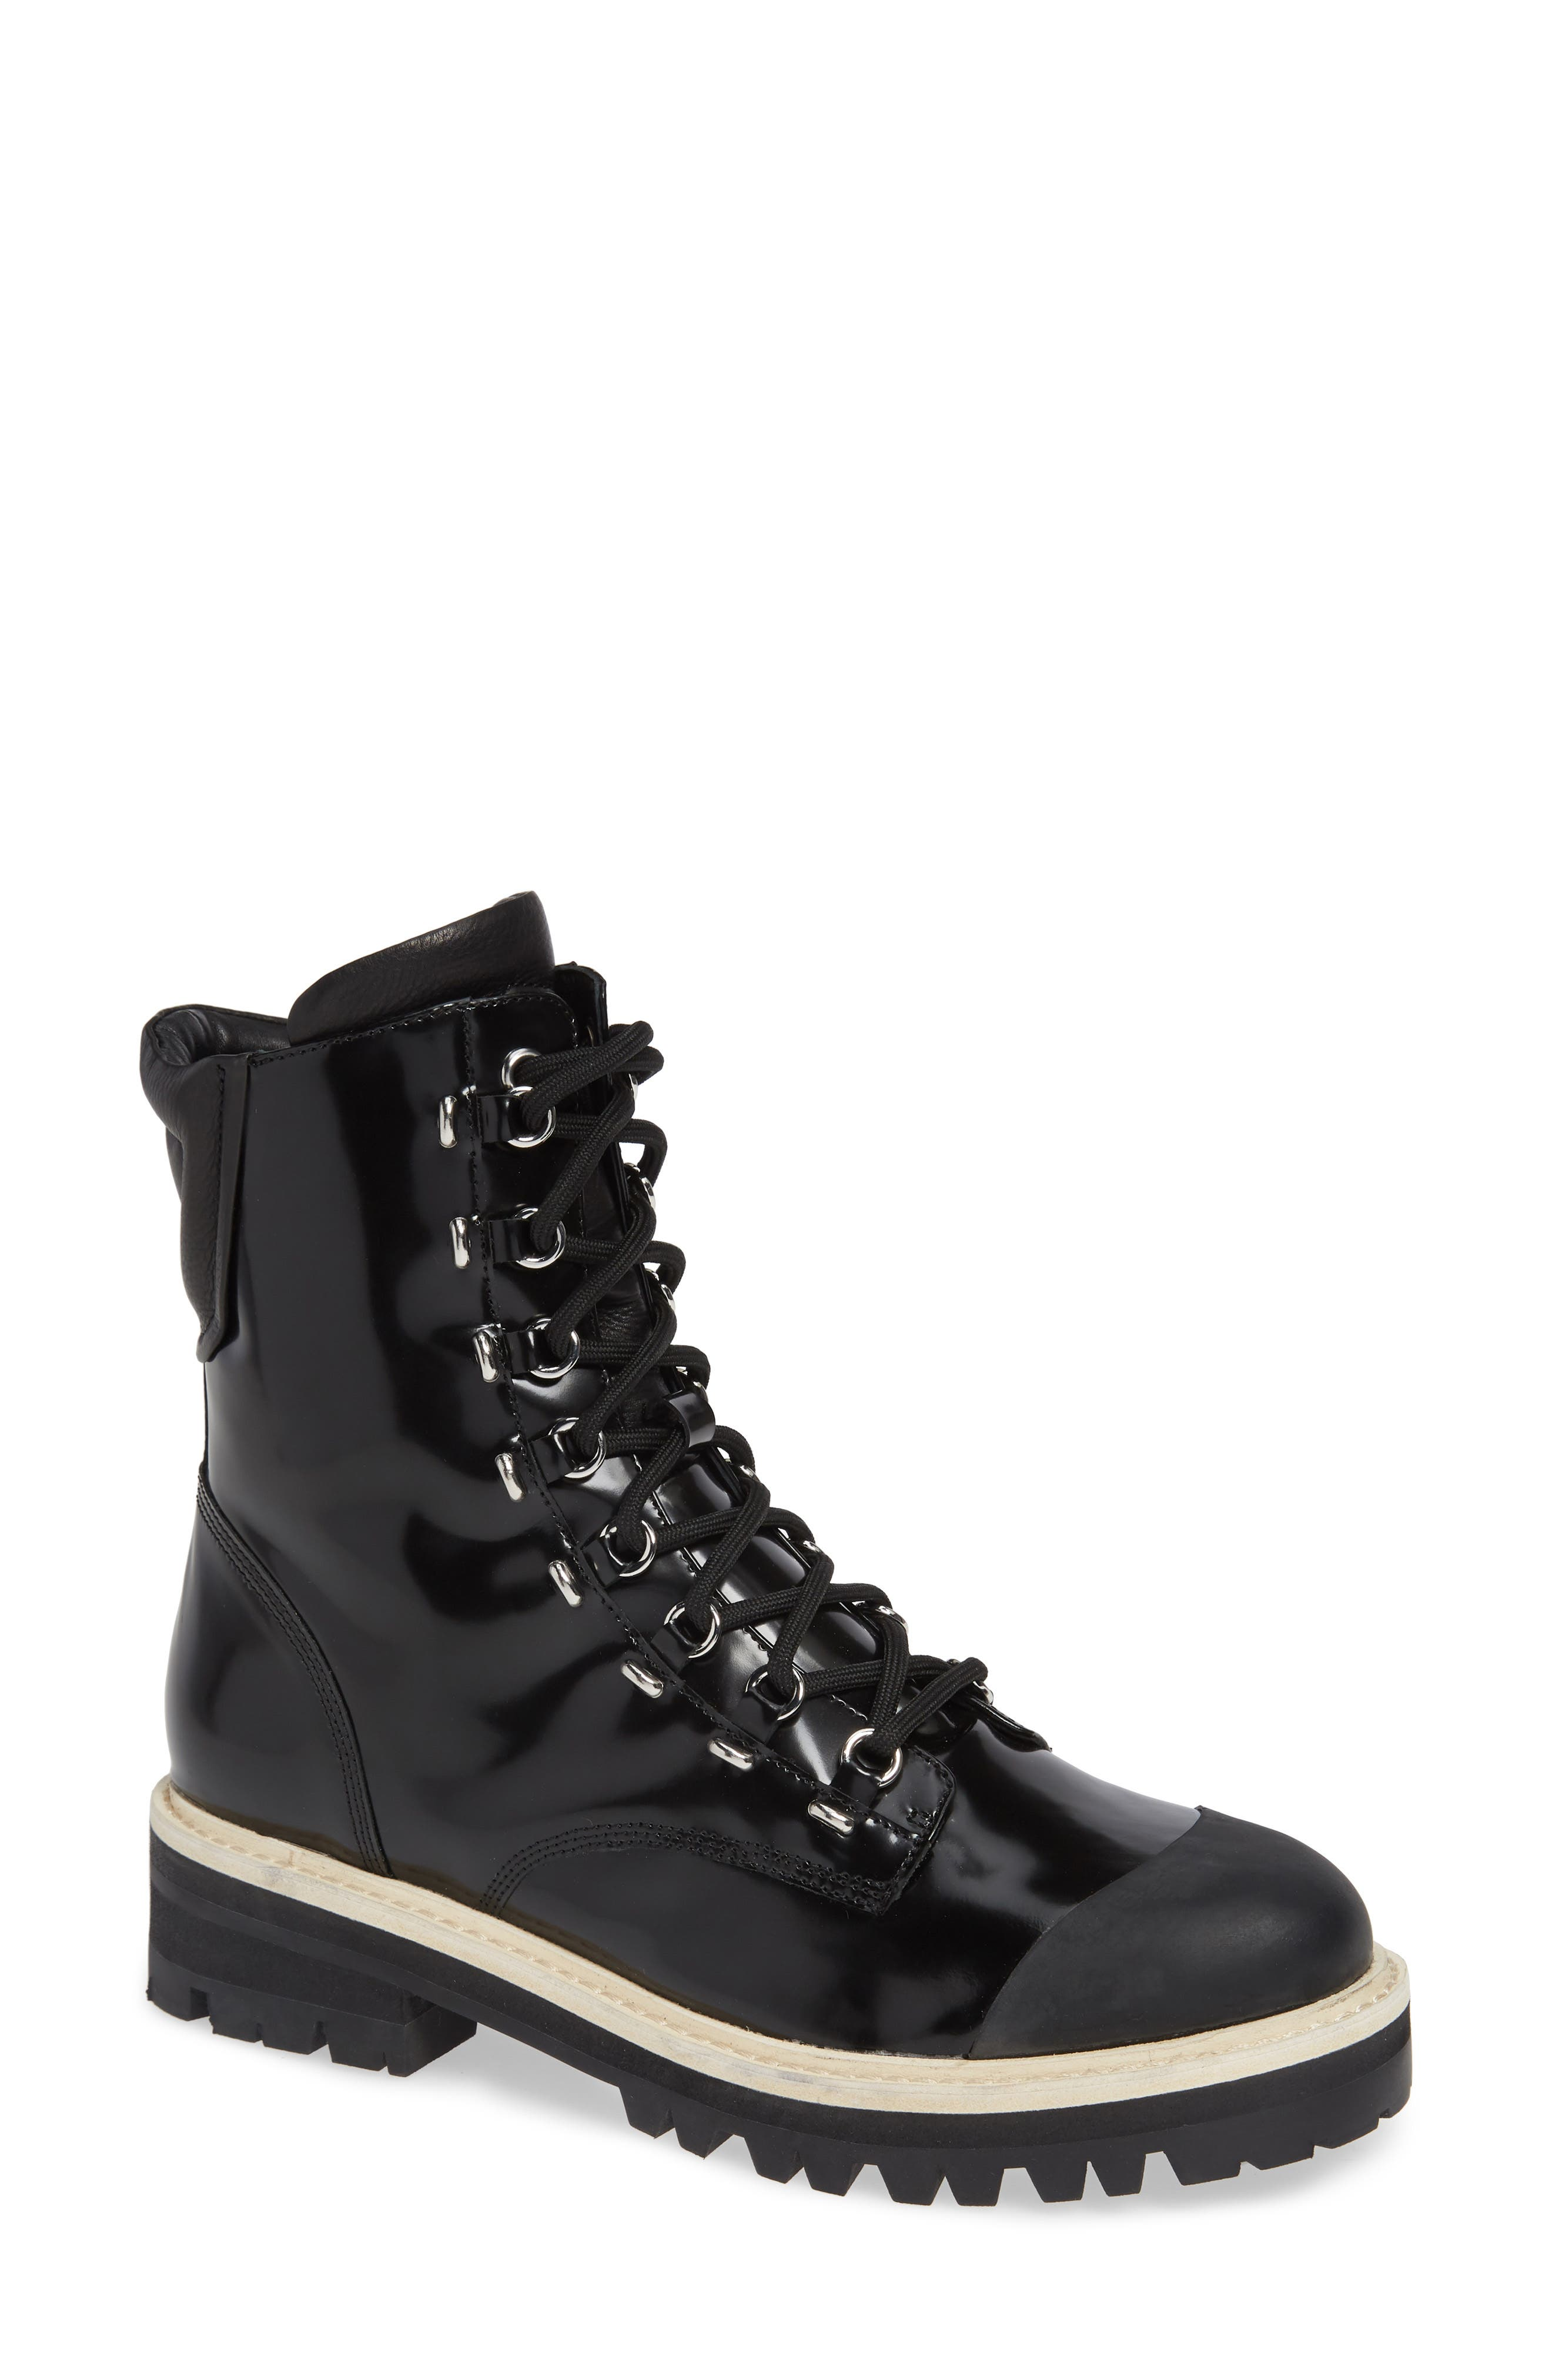 Women'S Irene Round Toe Leather Boots in Black